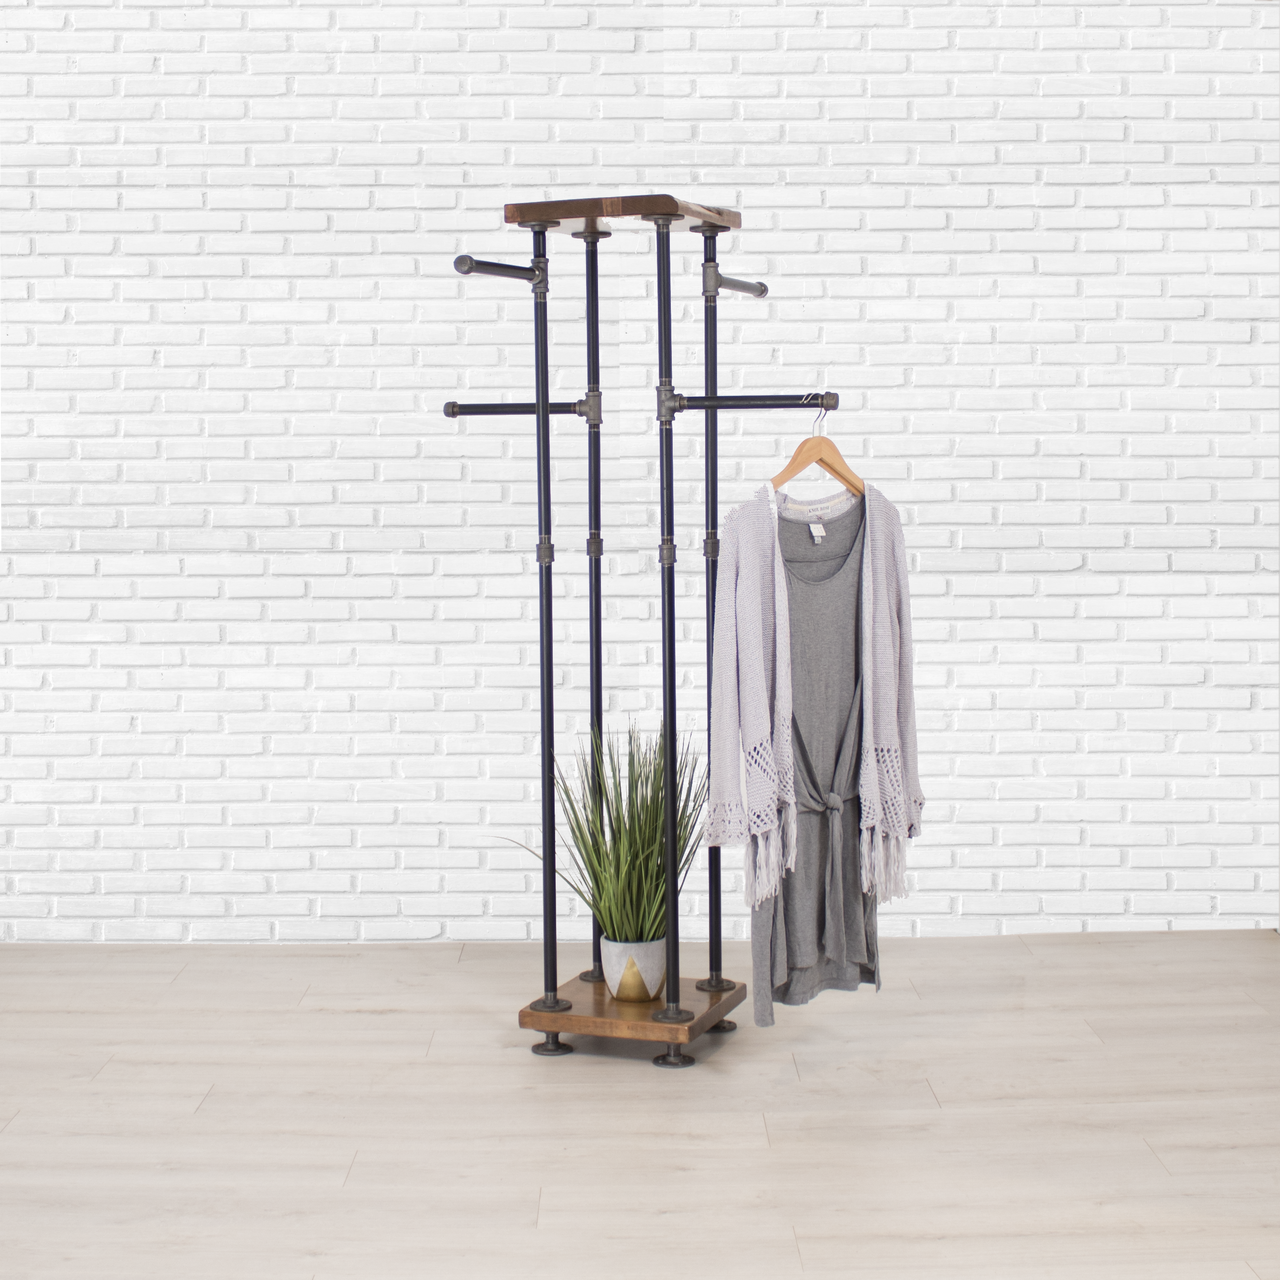 Industrial Pipe And Wood Clothes Rack 4 Way, Garment Rack, Clothing Rack,